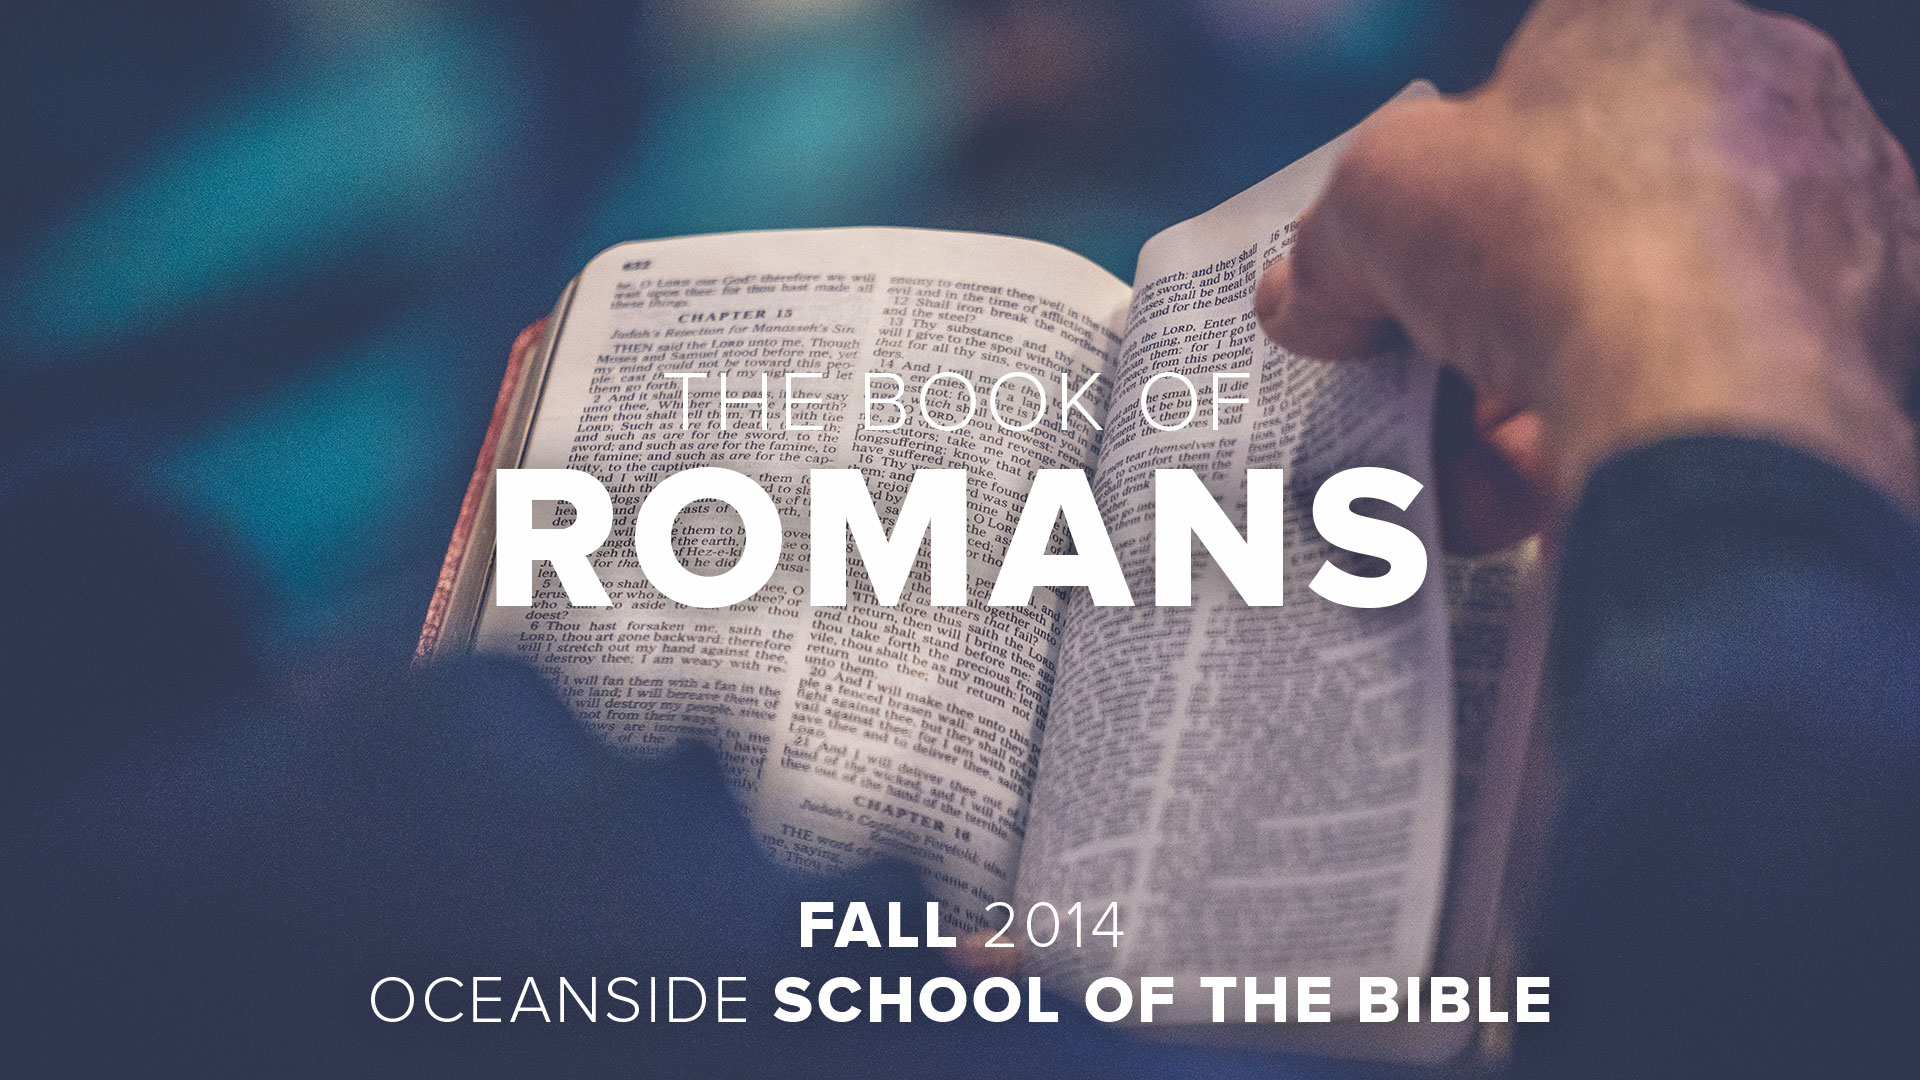 Session 9 - Romans